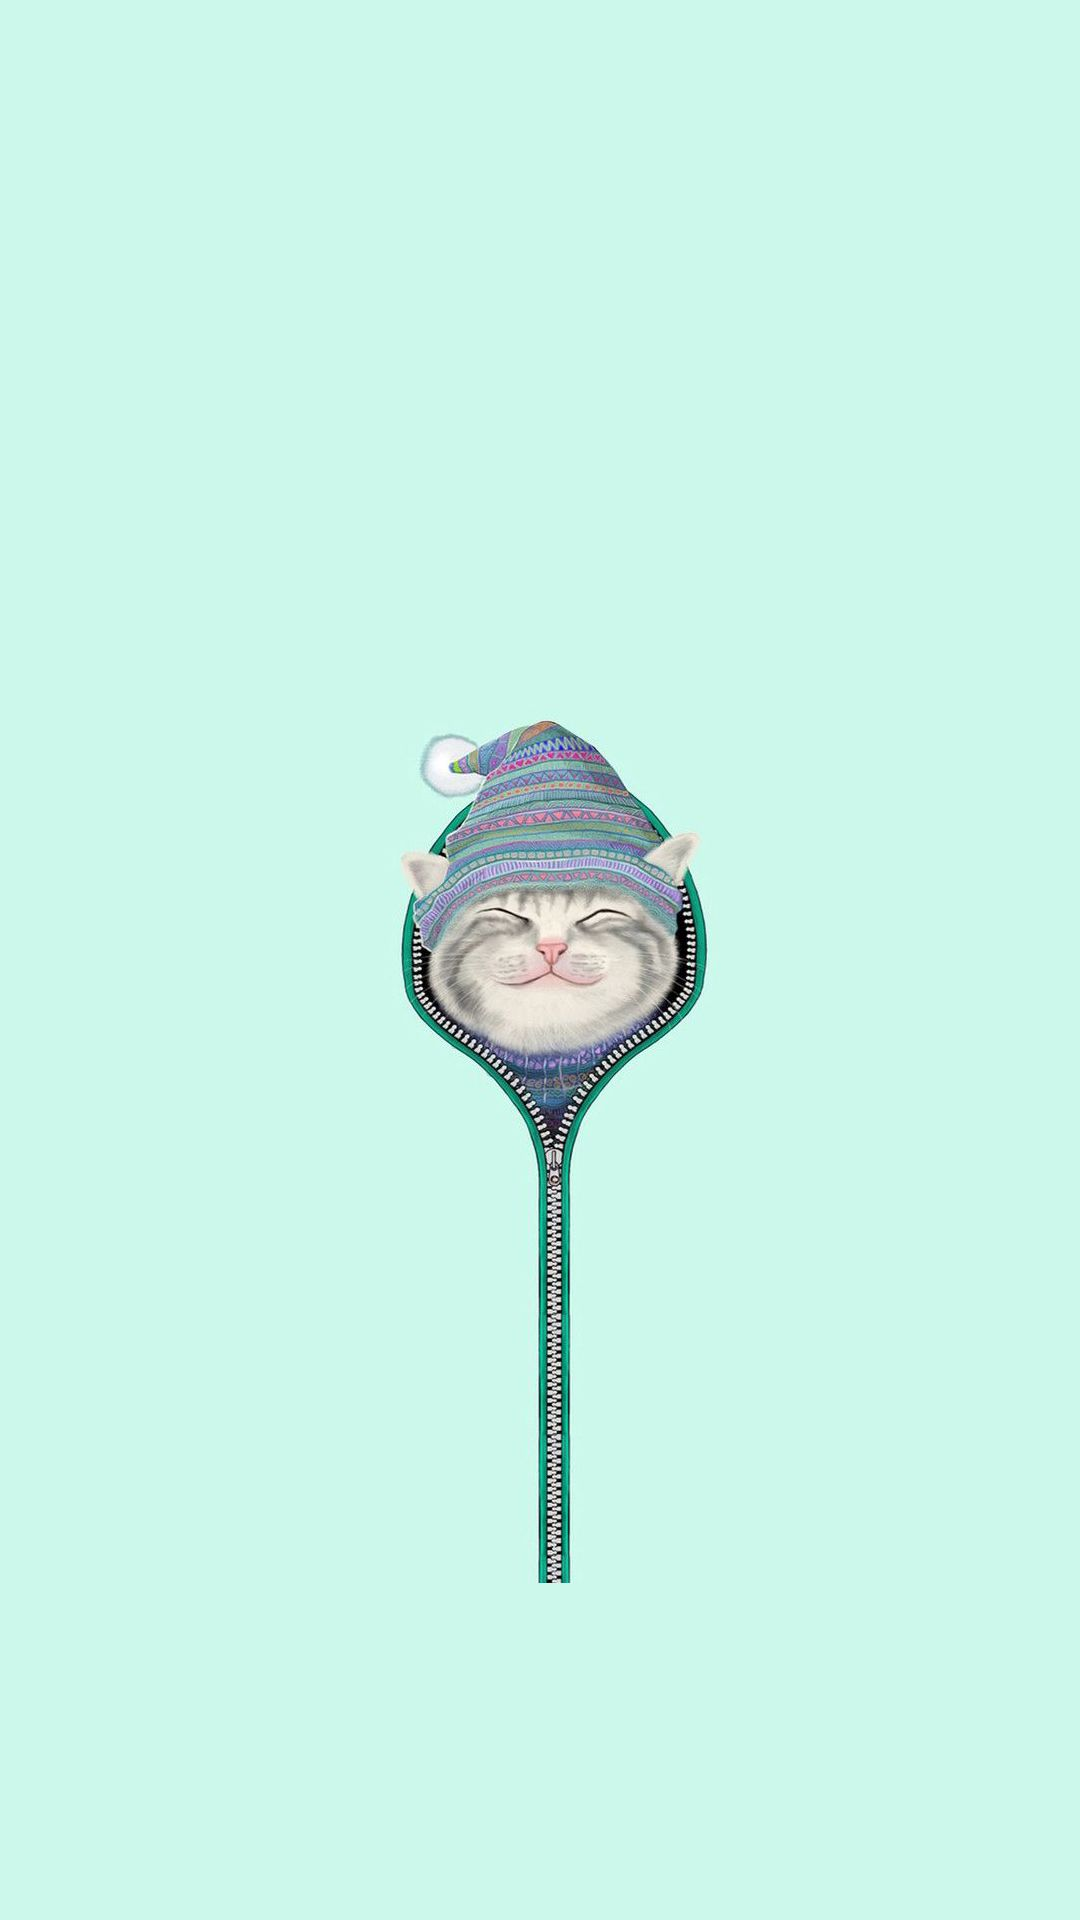 Wallpaper iphone cute cat - Funny Cat Zipper Fur Cap Hat Iphone 6 Hd Wallpaper Http